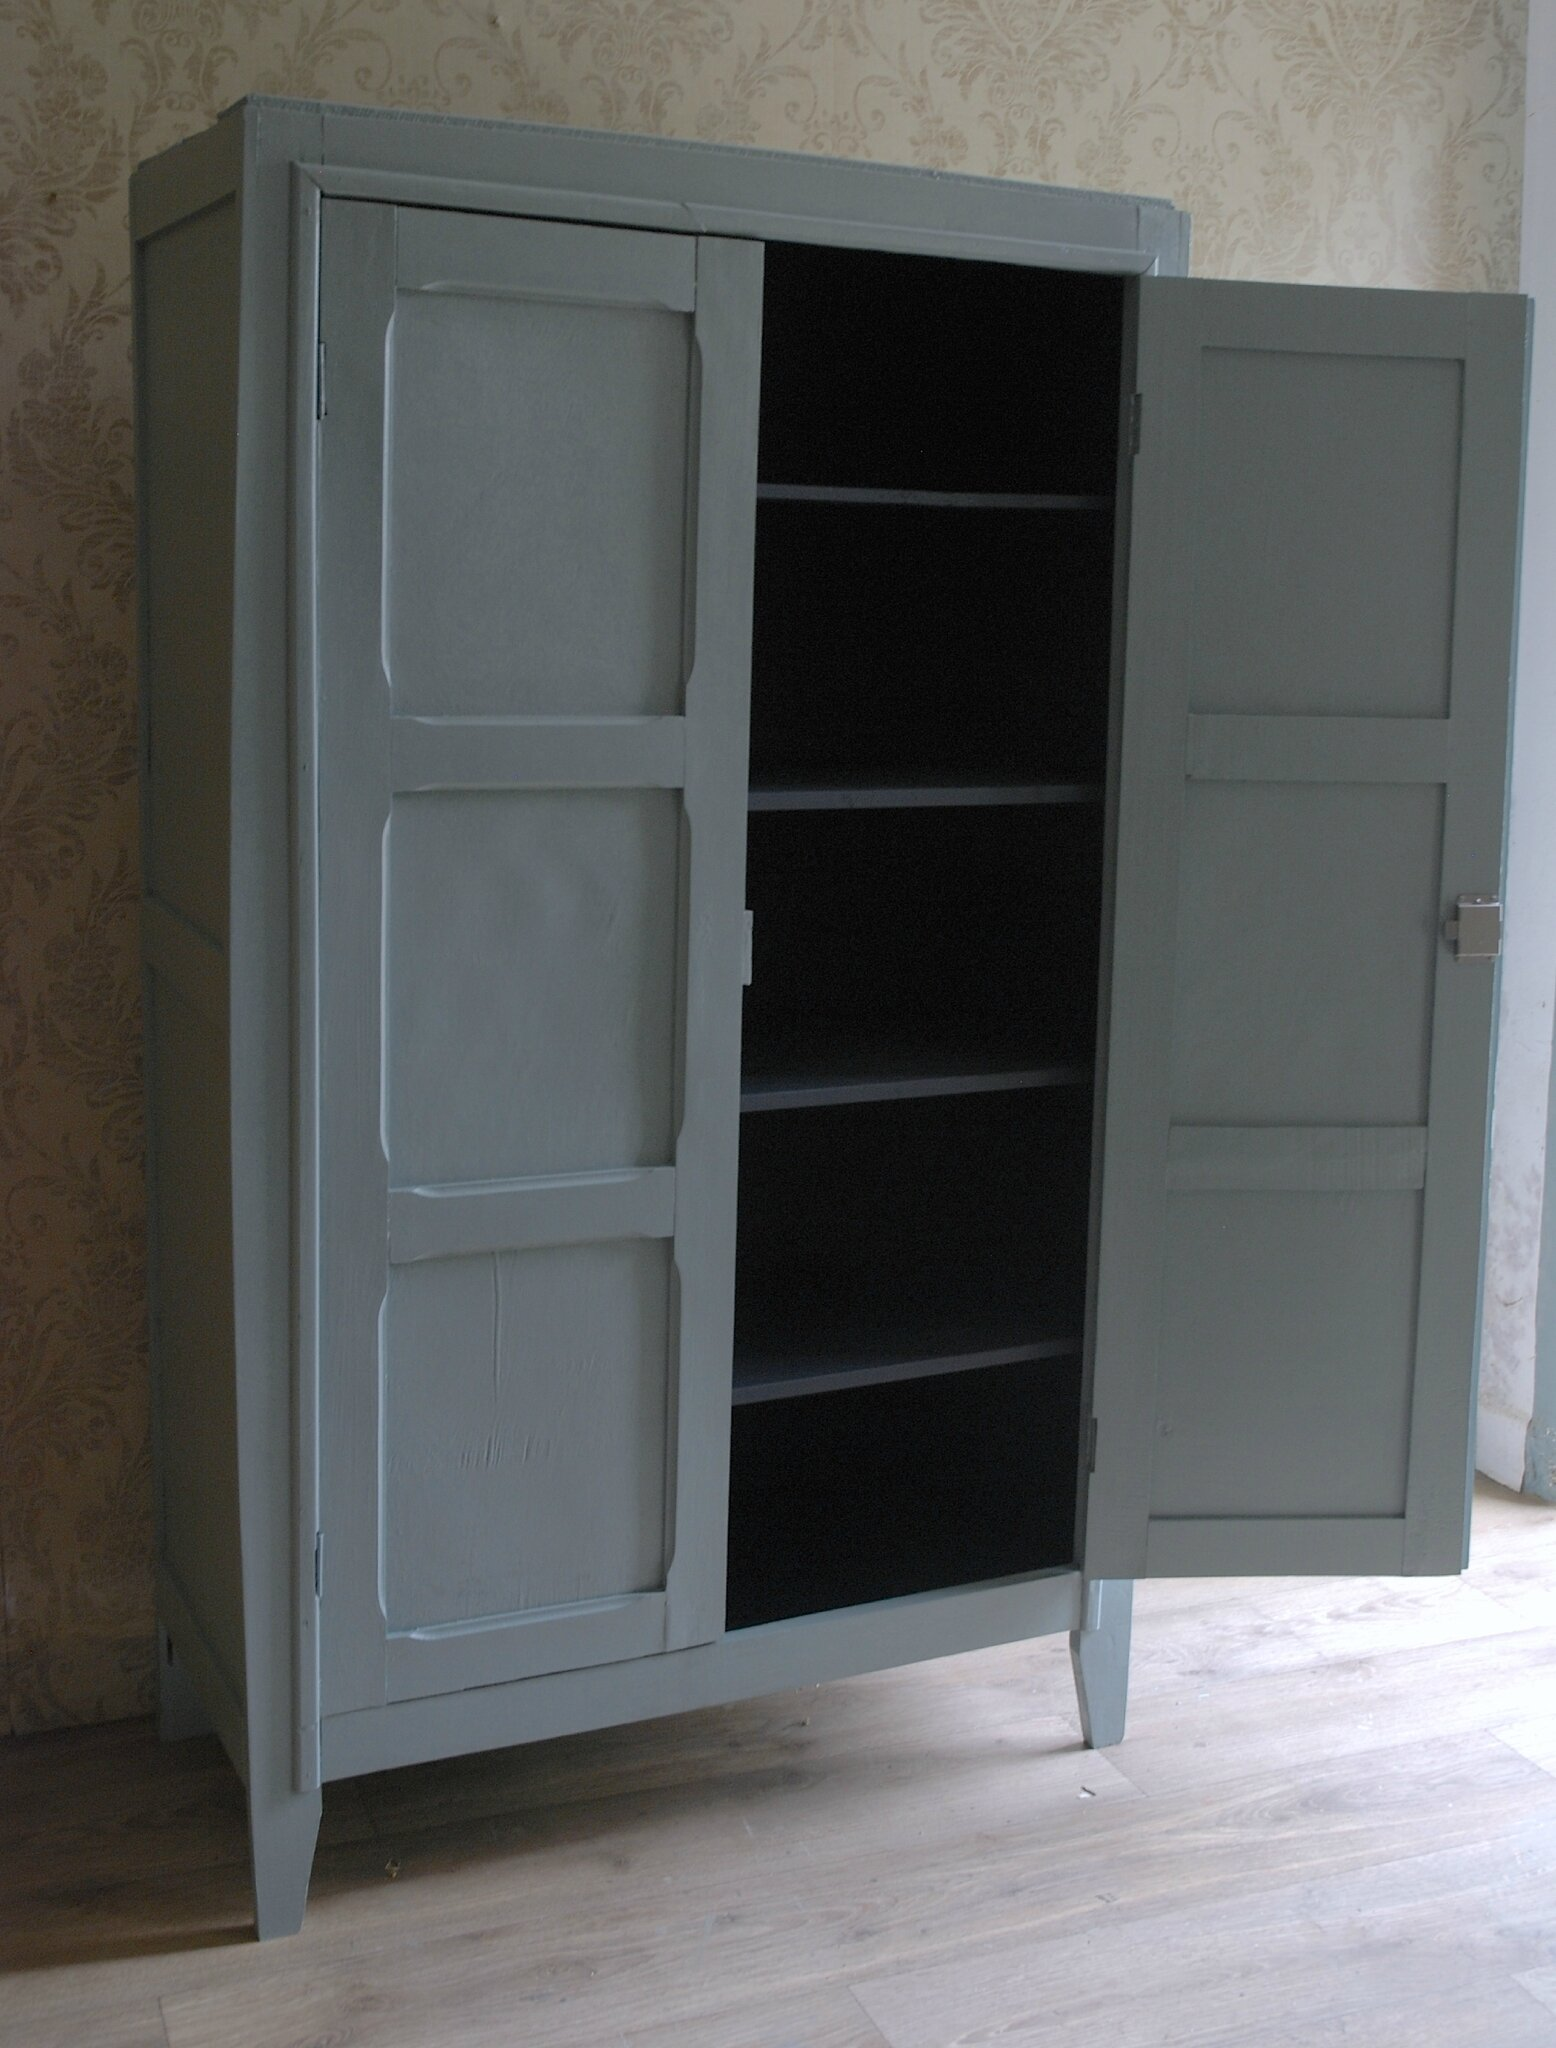 comment restaurer une armoire ancienne commode arbalte relooke avant aprs with comment. Black Bedroom Furniture Sets. Home Design Ideas